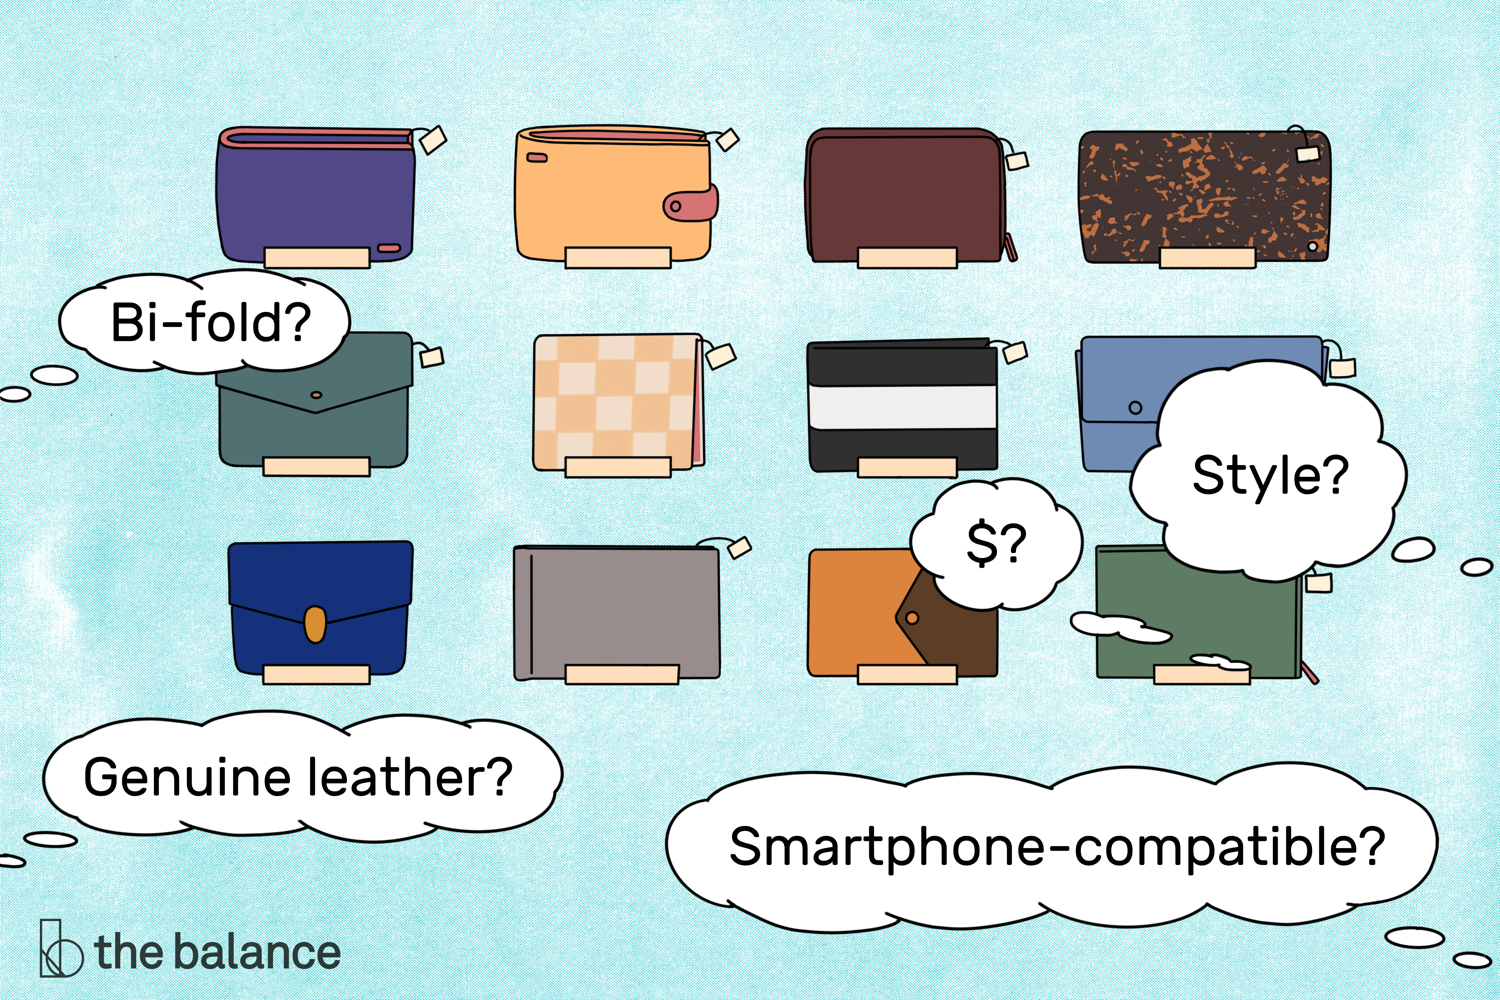 Image shows 12 wallets of various shapes, sizes, colors, and materials. Text reads: